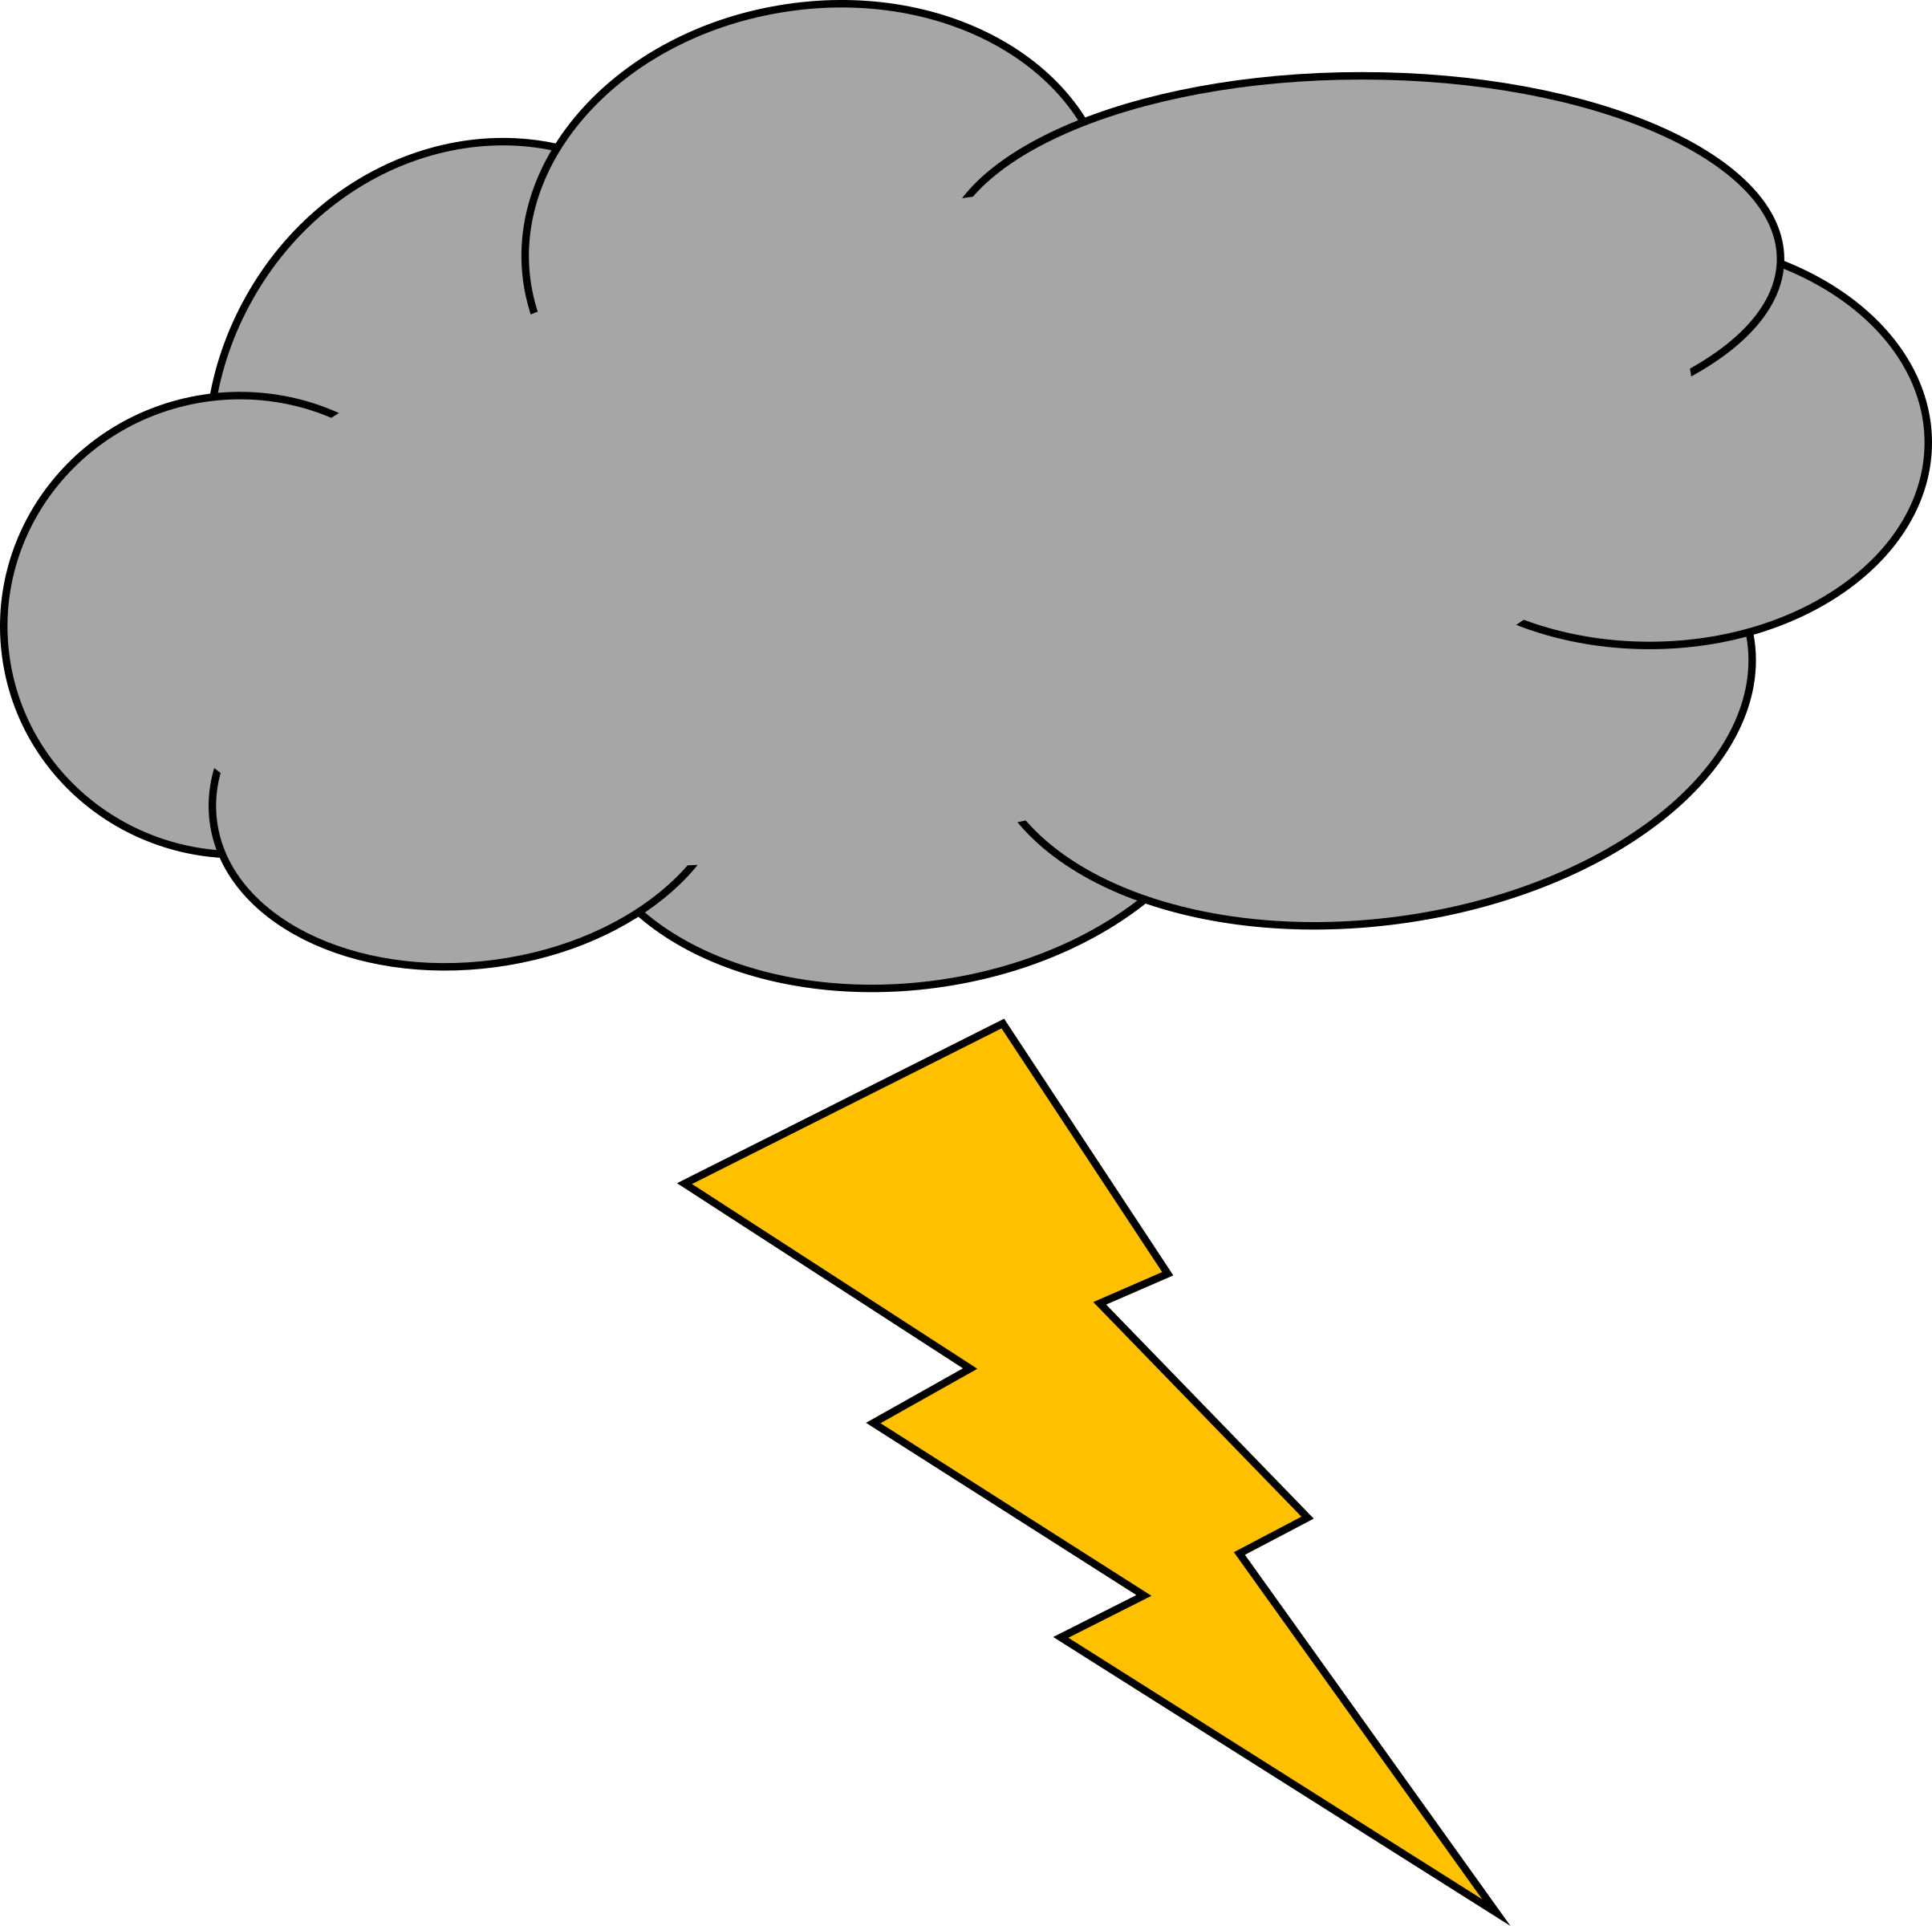 Lightning Thunder And Clipart Transparent Png 2.